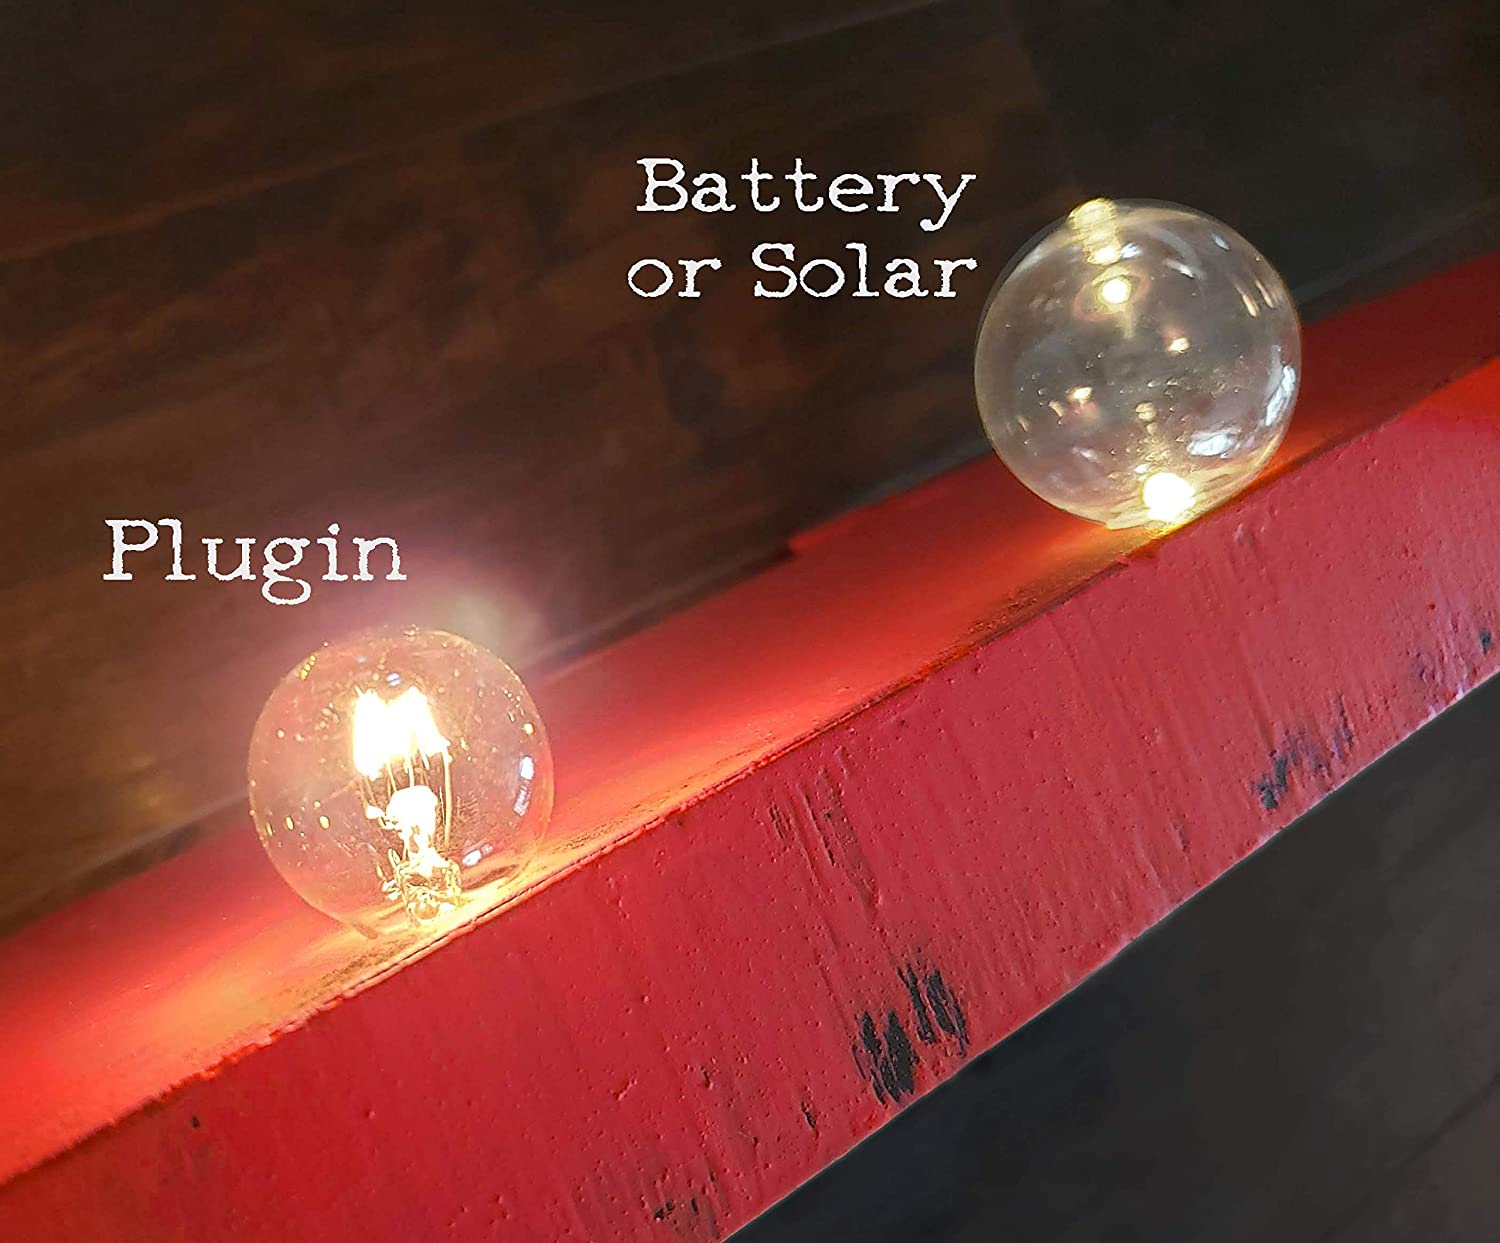 Plugin Rustic Vintage Marquee Light Up Sign On Sale Battery or Solar Bar Tasting White Red Winery Vineyard 20 WINE Round Metal Sign